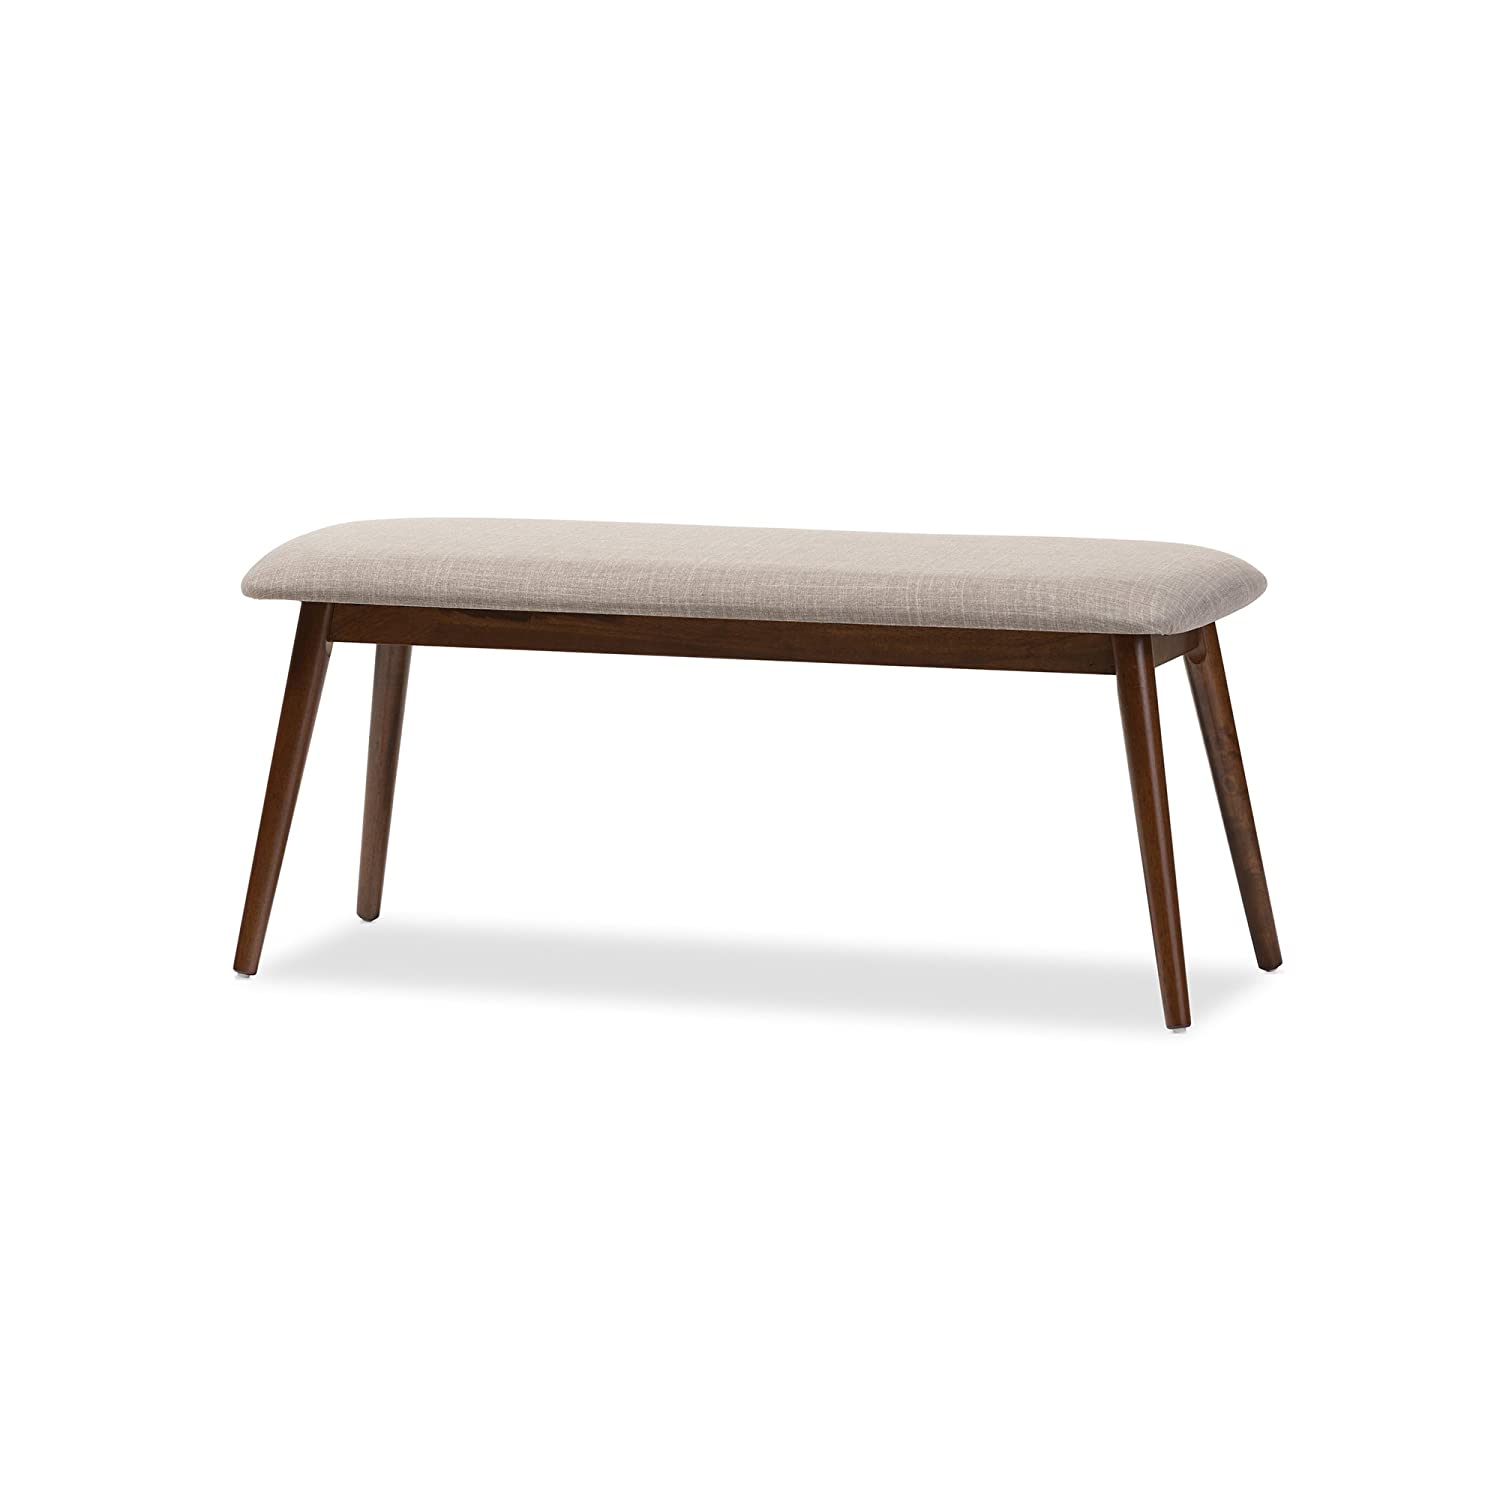 Astonishing Baxton Studio Juliette Mid Century Modern Light Grey Fabric And Oak Medium Brown Finishing Wood Dining Bench Gmtry Best Dining Table And Chair Ideas Images Gmtryco